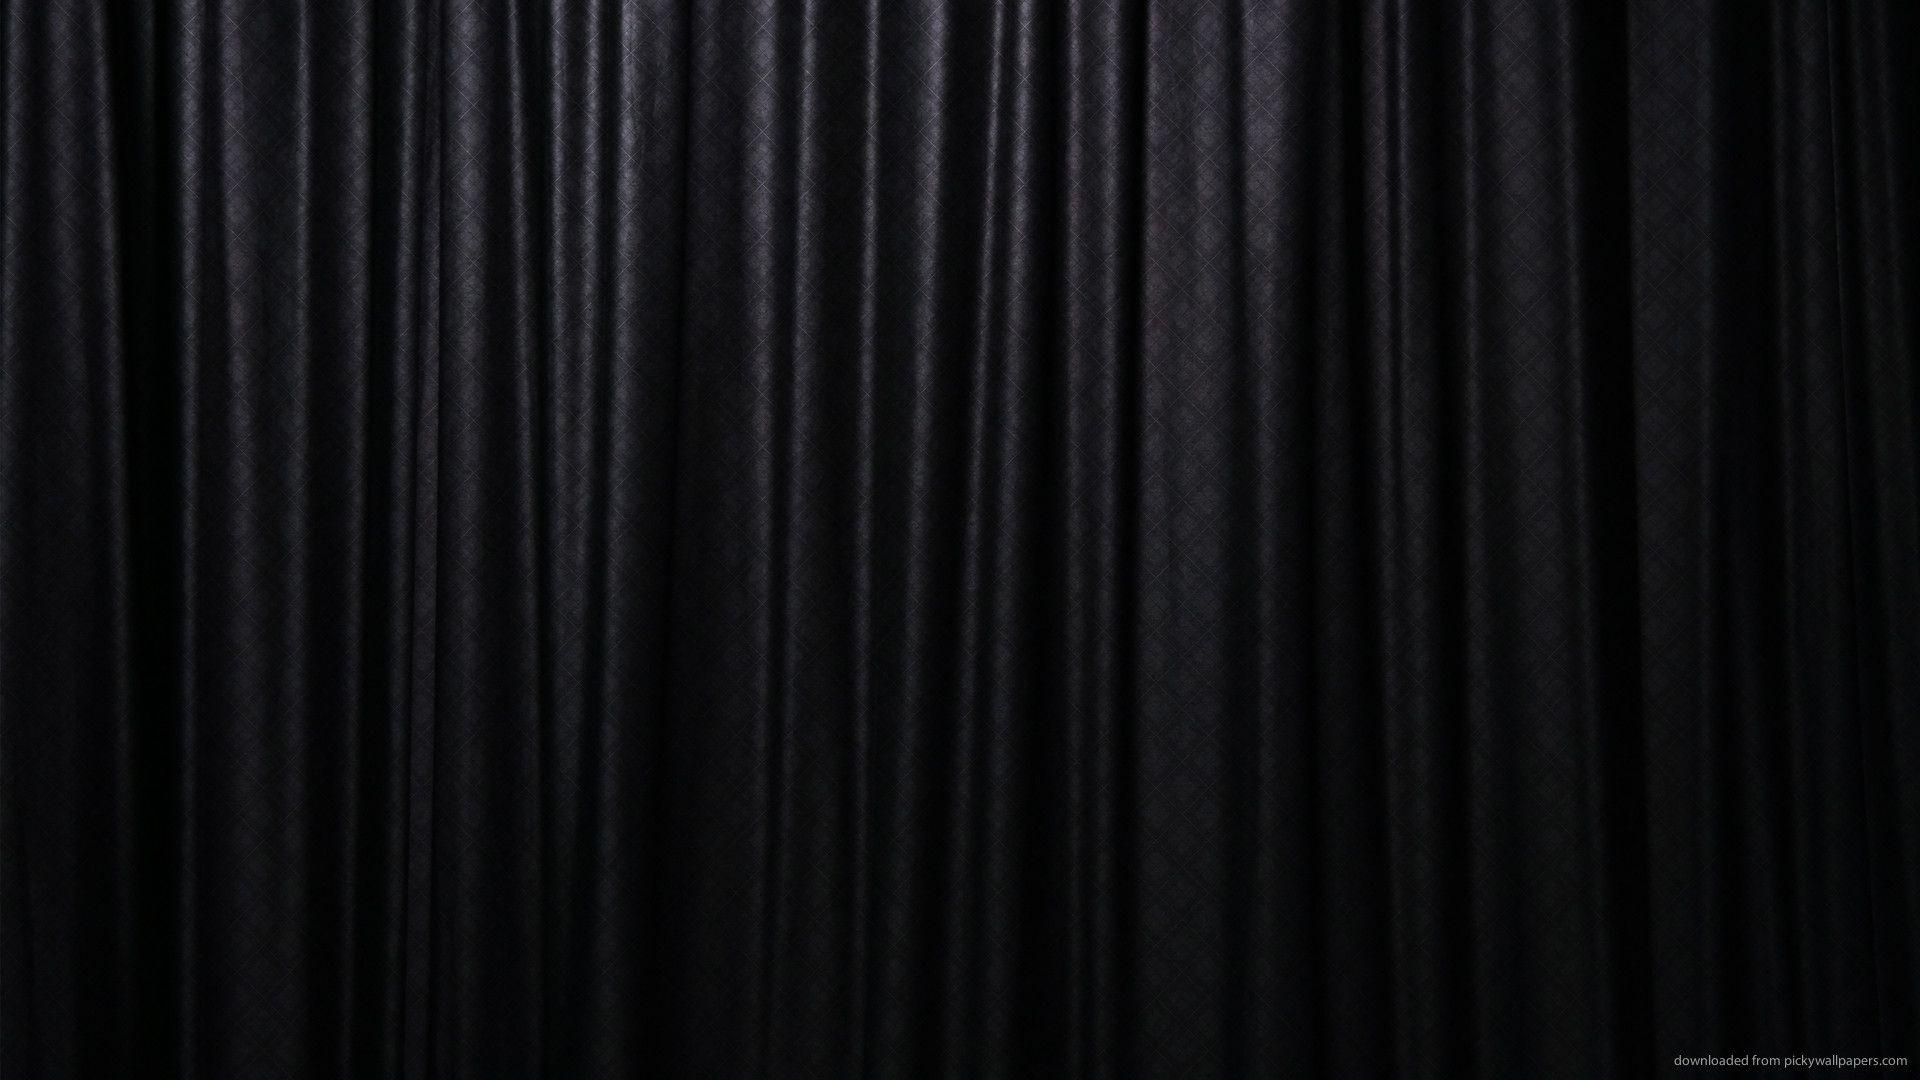 Download 1920x1080 Black Curtain Wallpapers